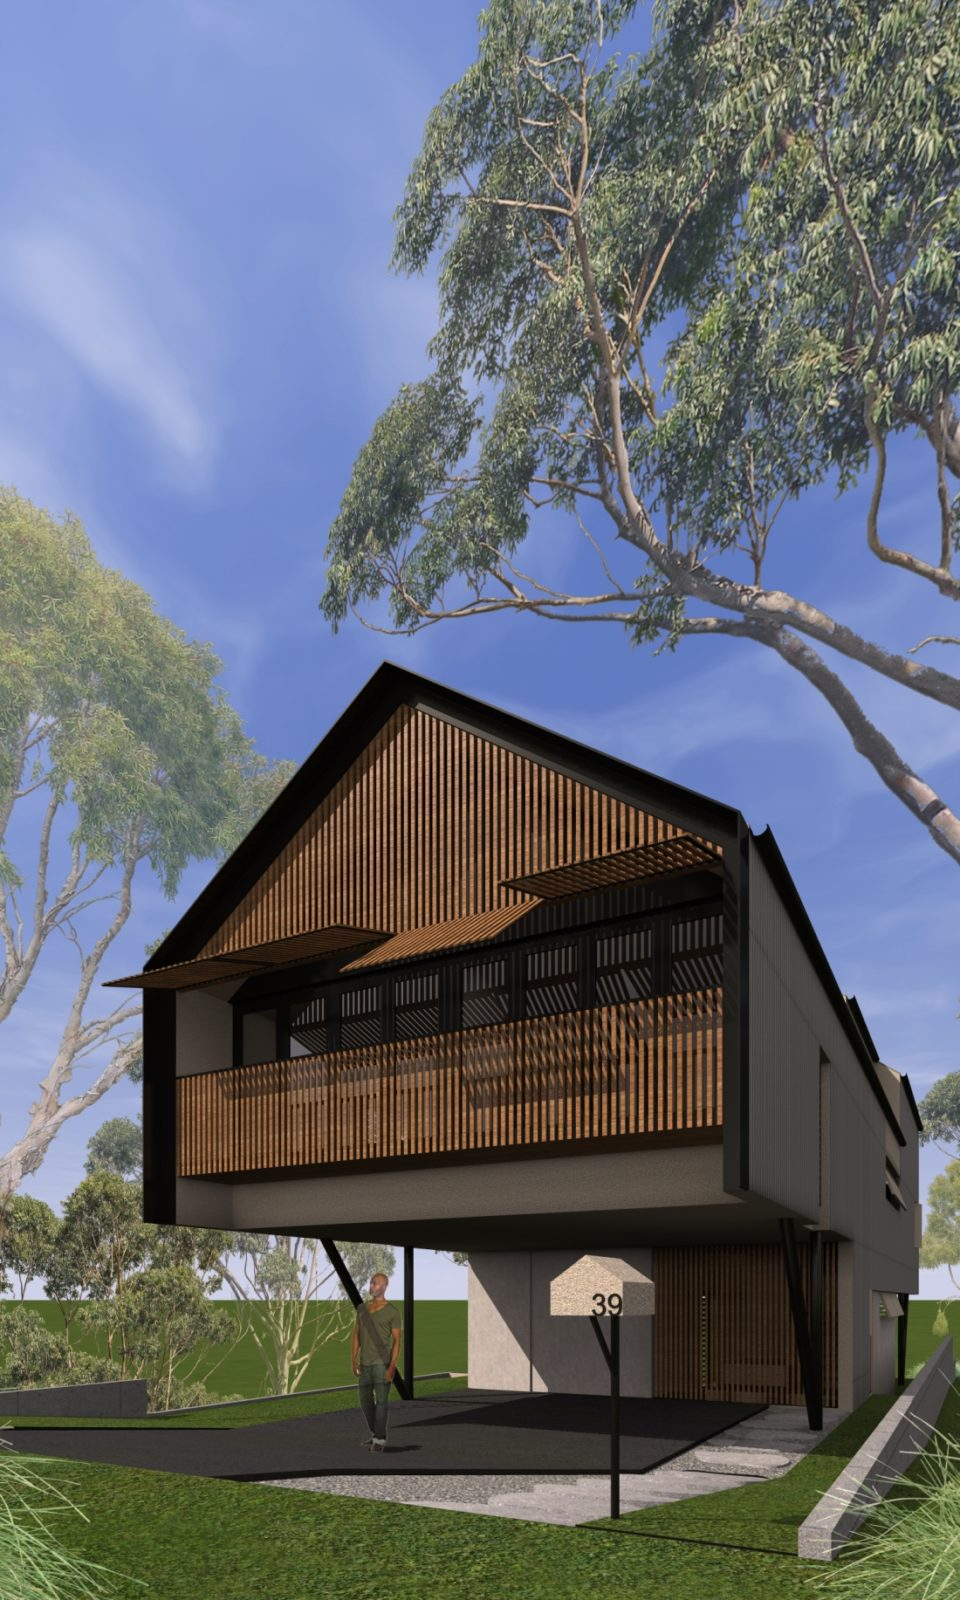 HILL HOUSE- Reddog Award Winning Architects Brisbane